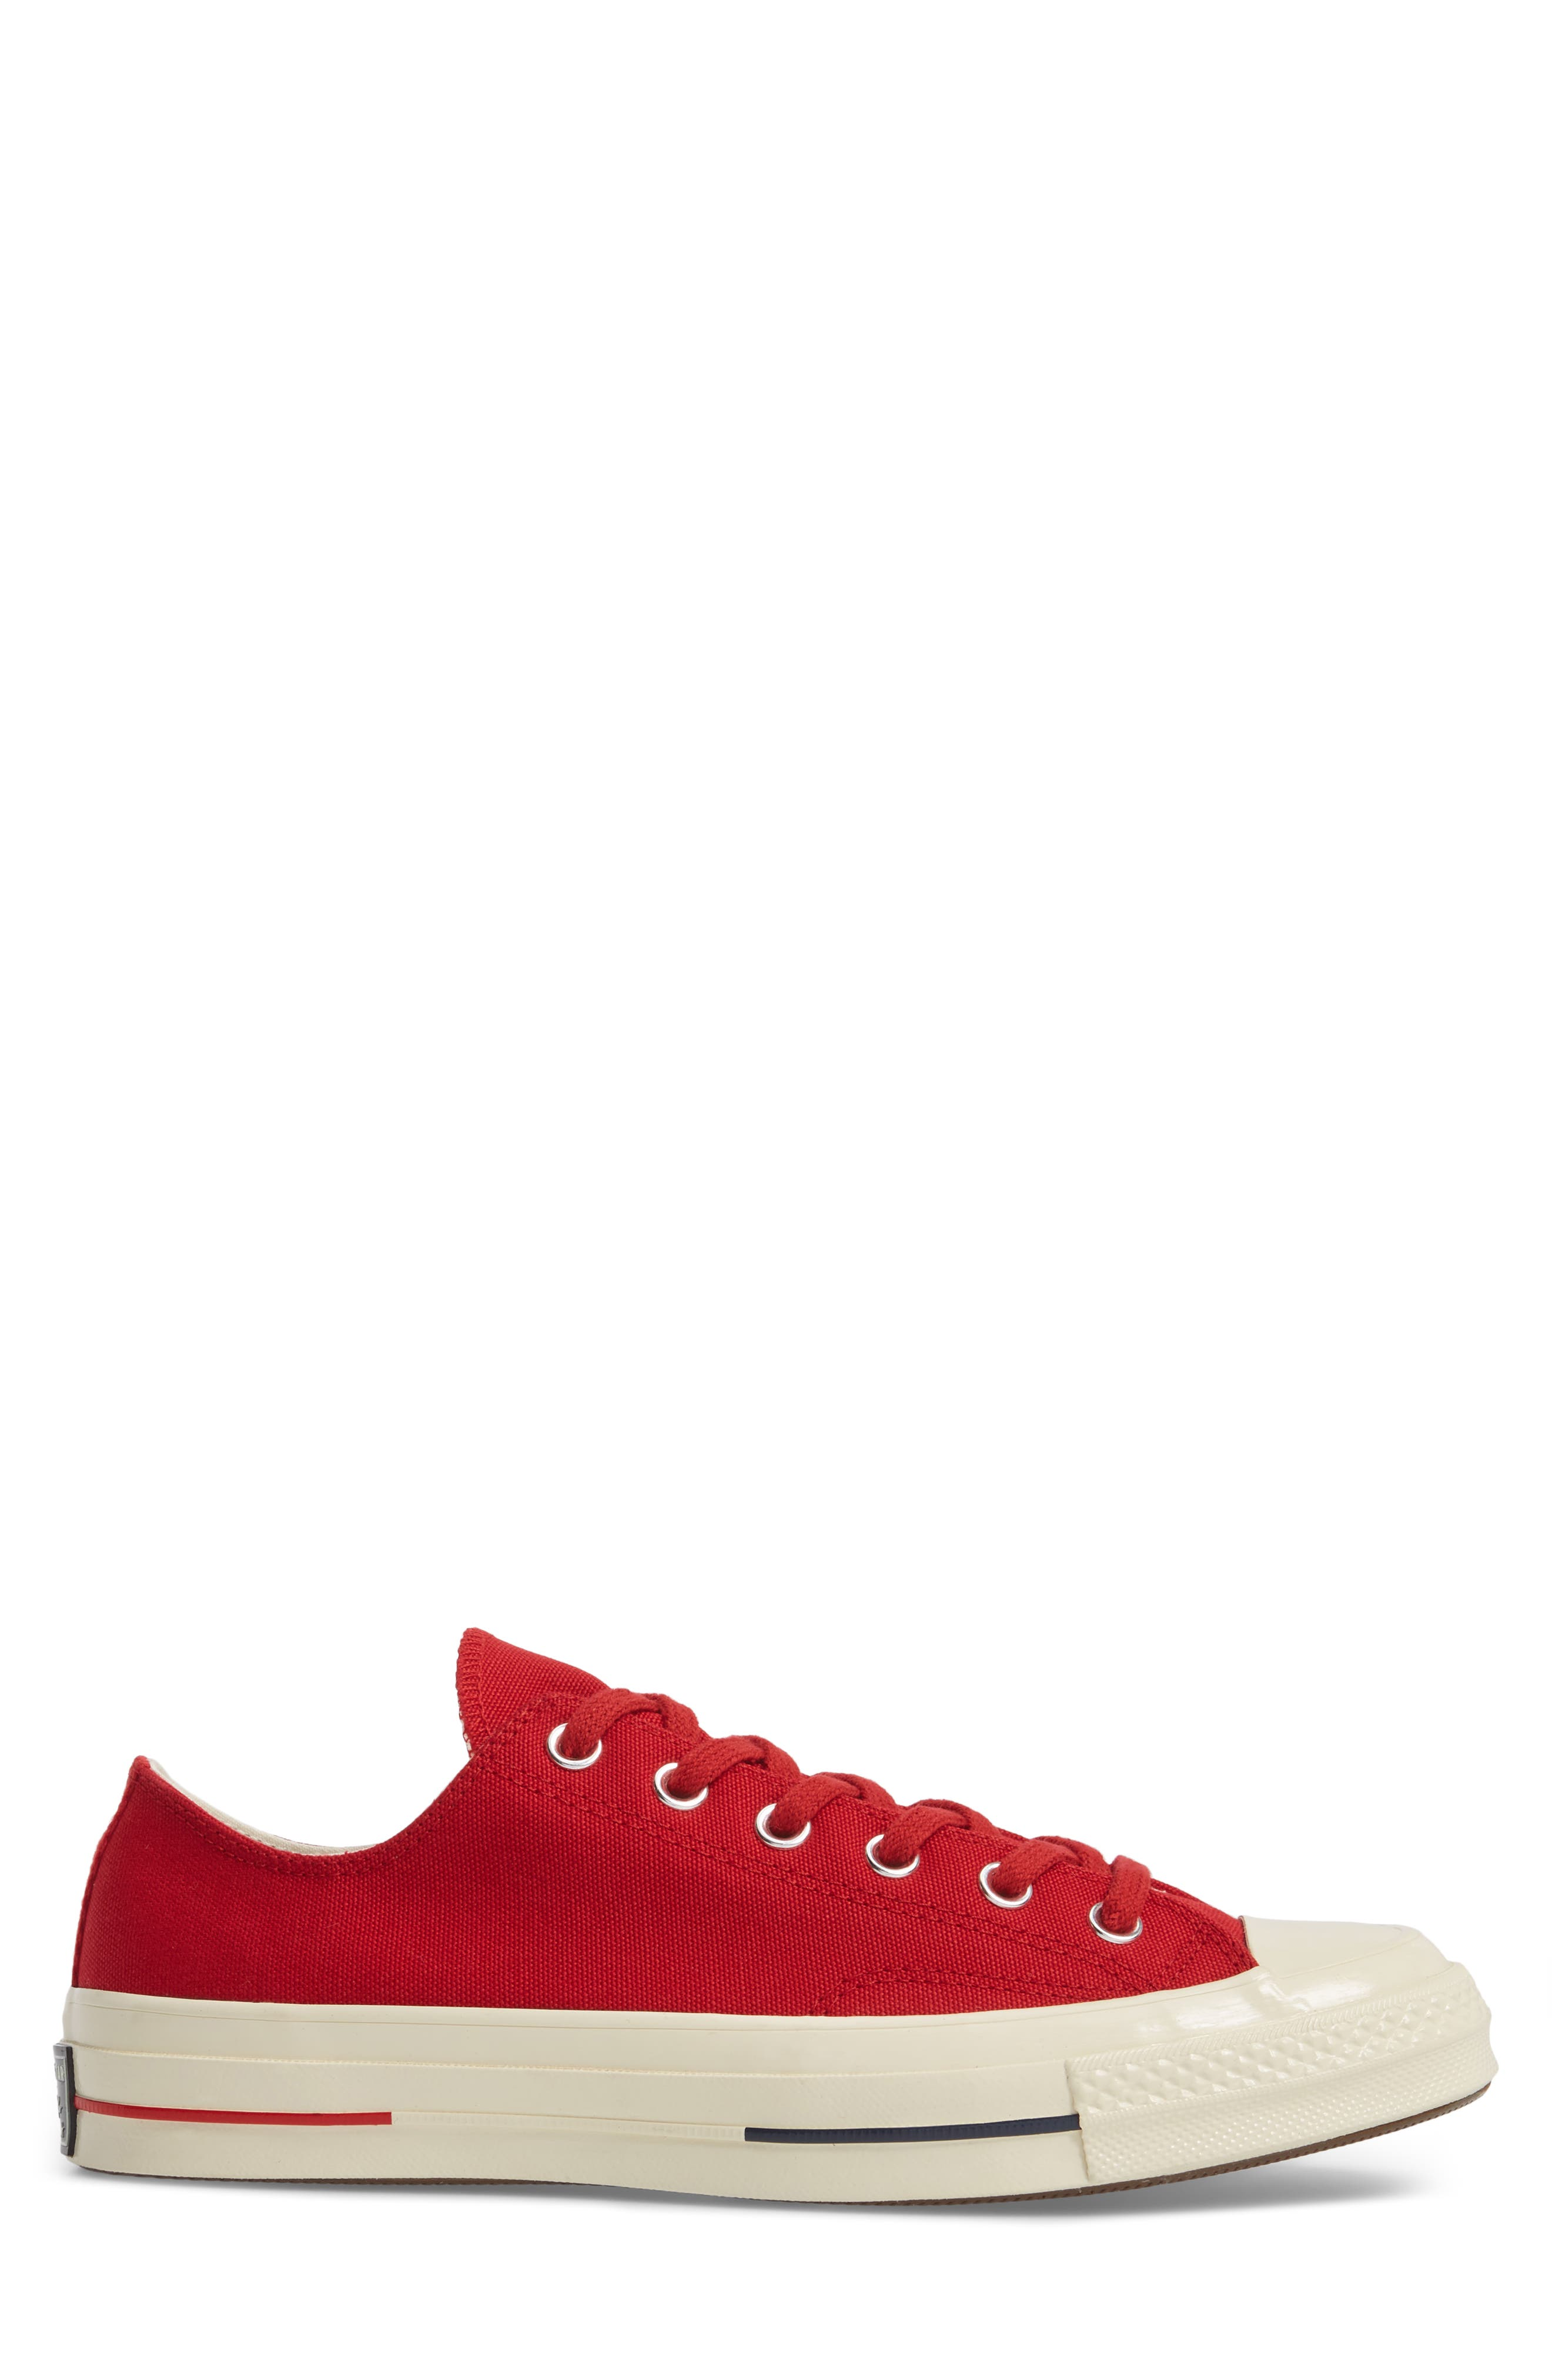 Chuck Taylor<sup>®</sup> All Star<sup>®</sup> '70s Heritage Low Top Sneaker,                             Alternate thumbnail 3, color,                             Gym Red